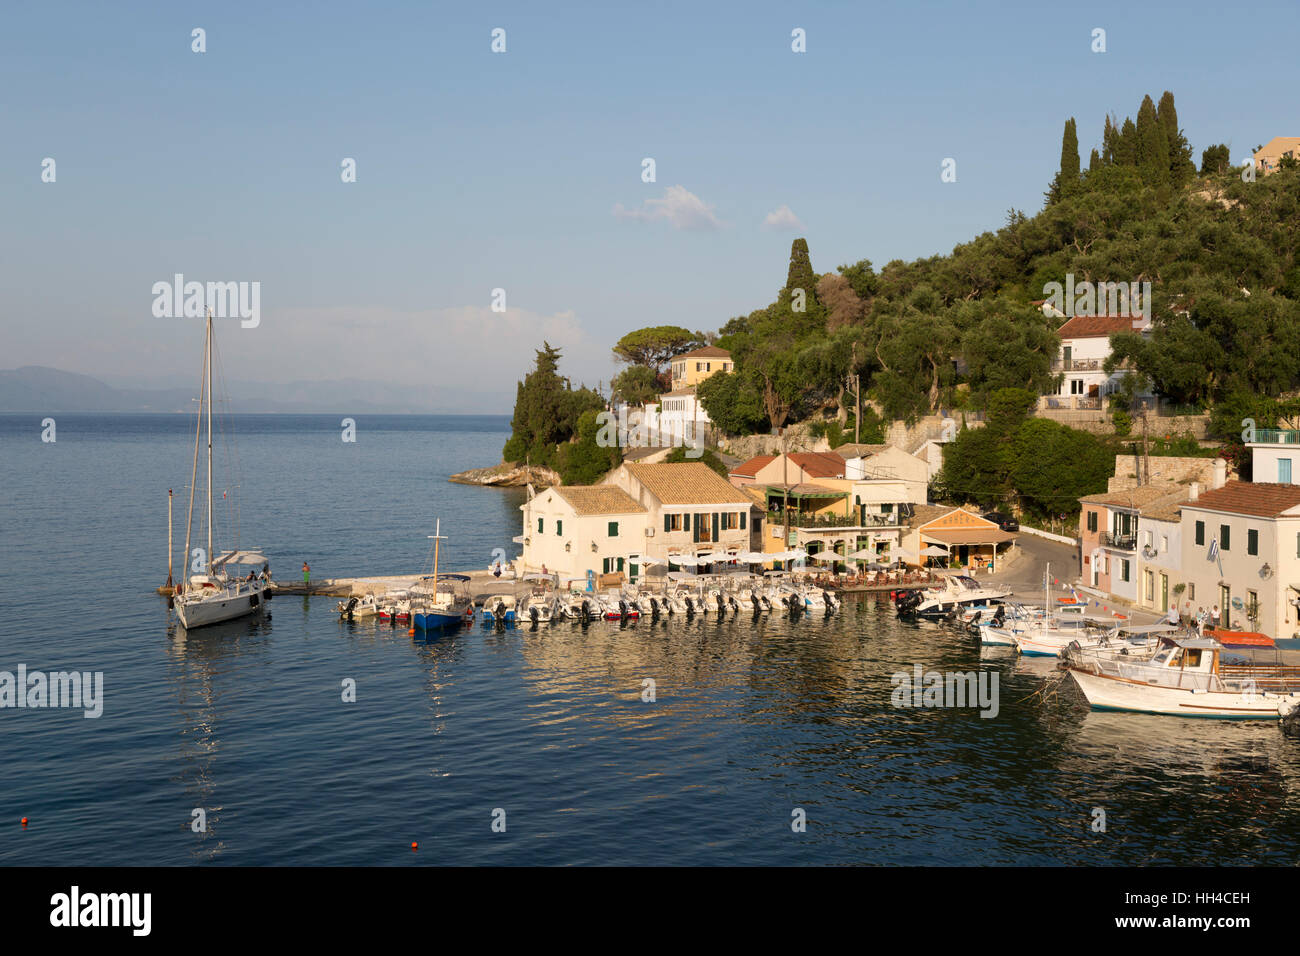 View over harbour, Loggos, Paxos, Ionian Islands, Greek Islands, Greece, Europe - Stock Image